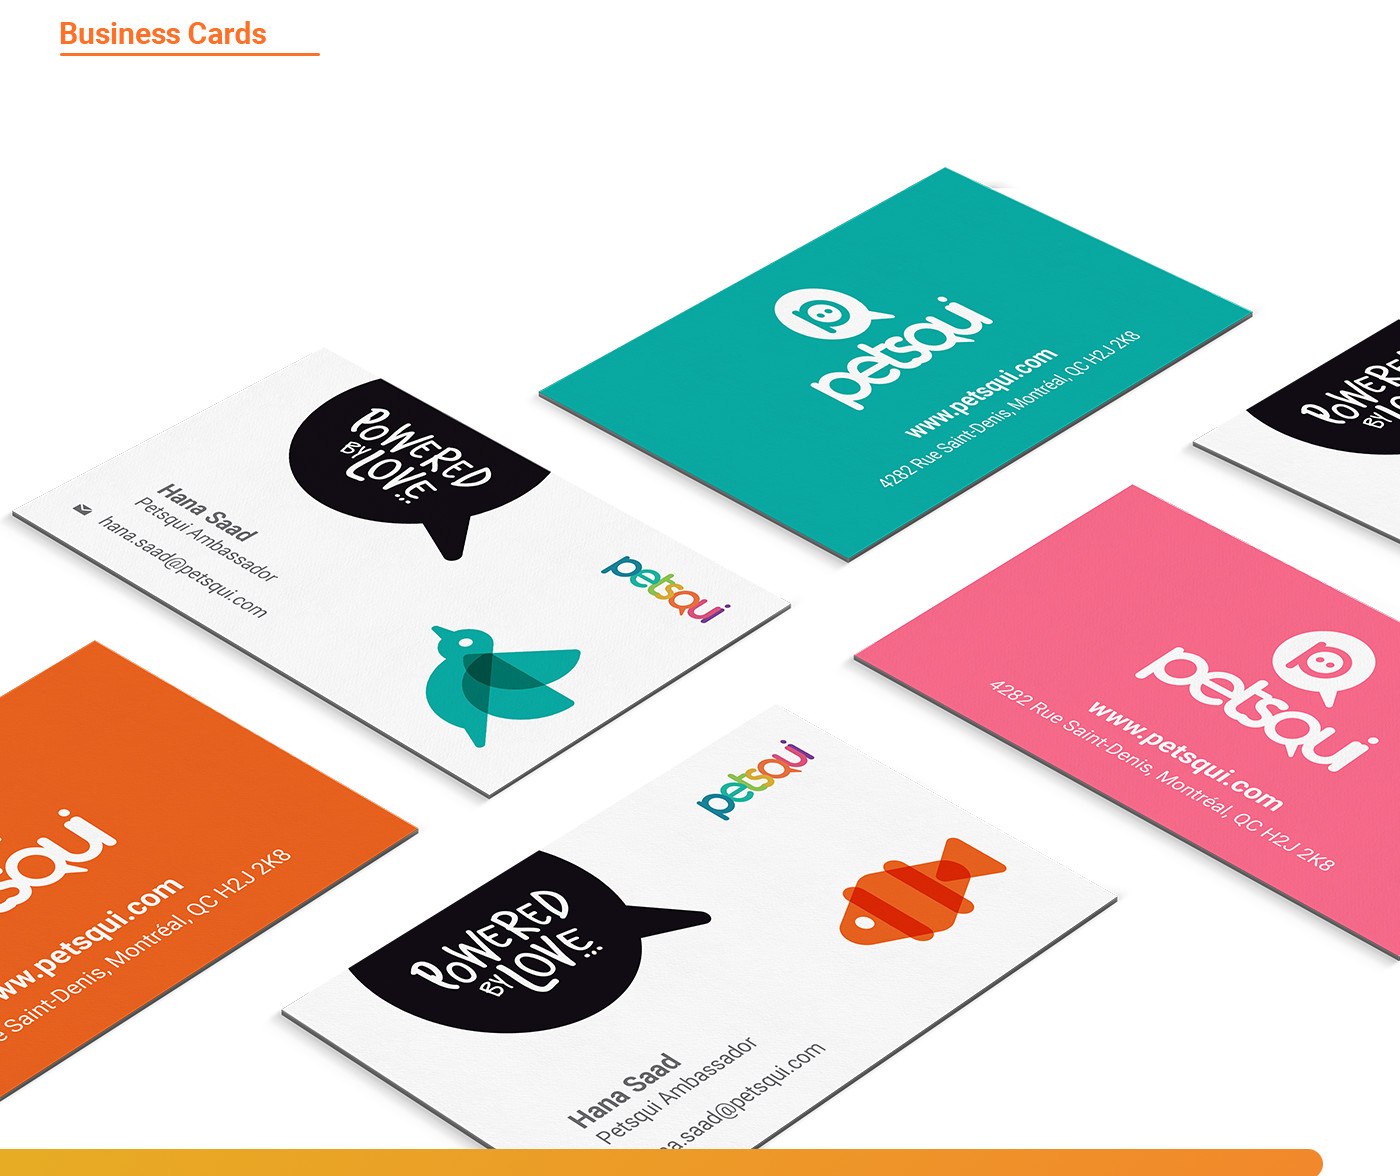 business cards design for petsqui